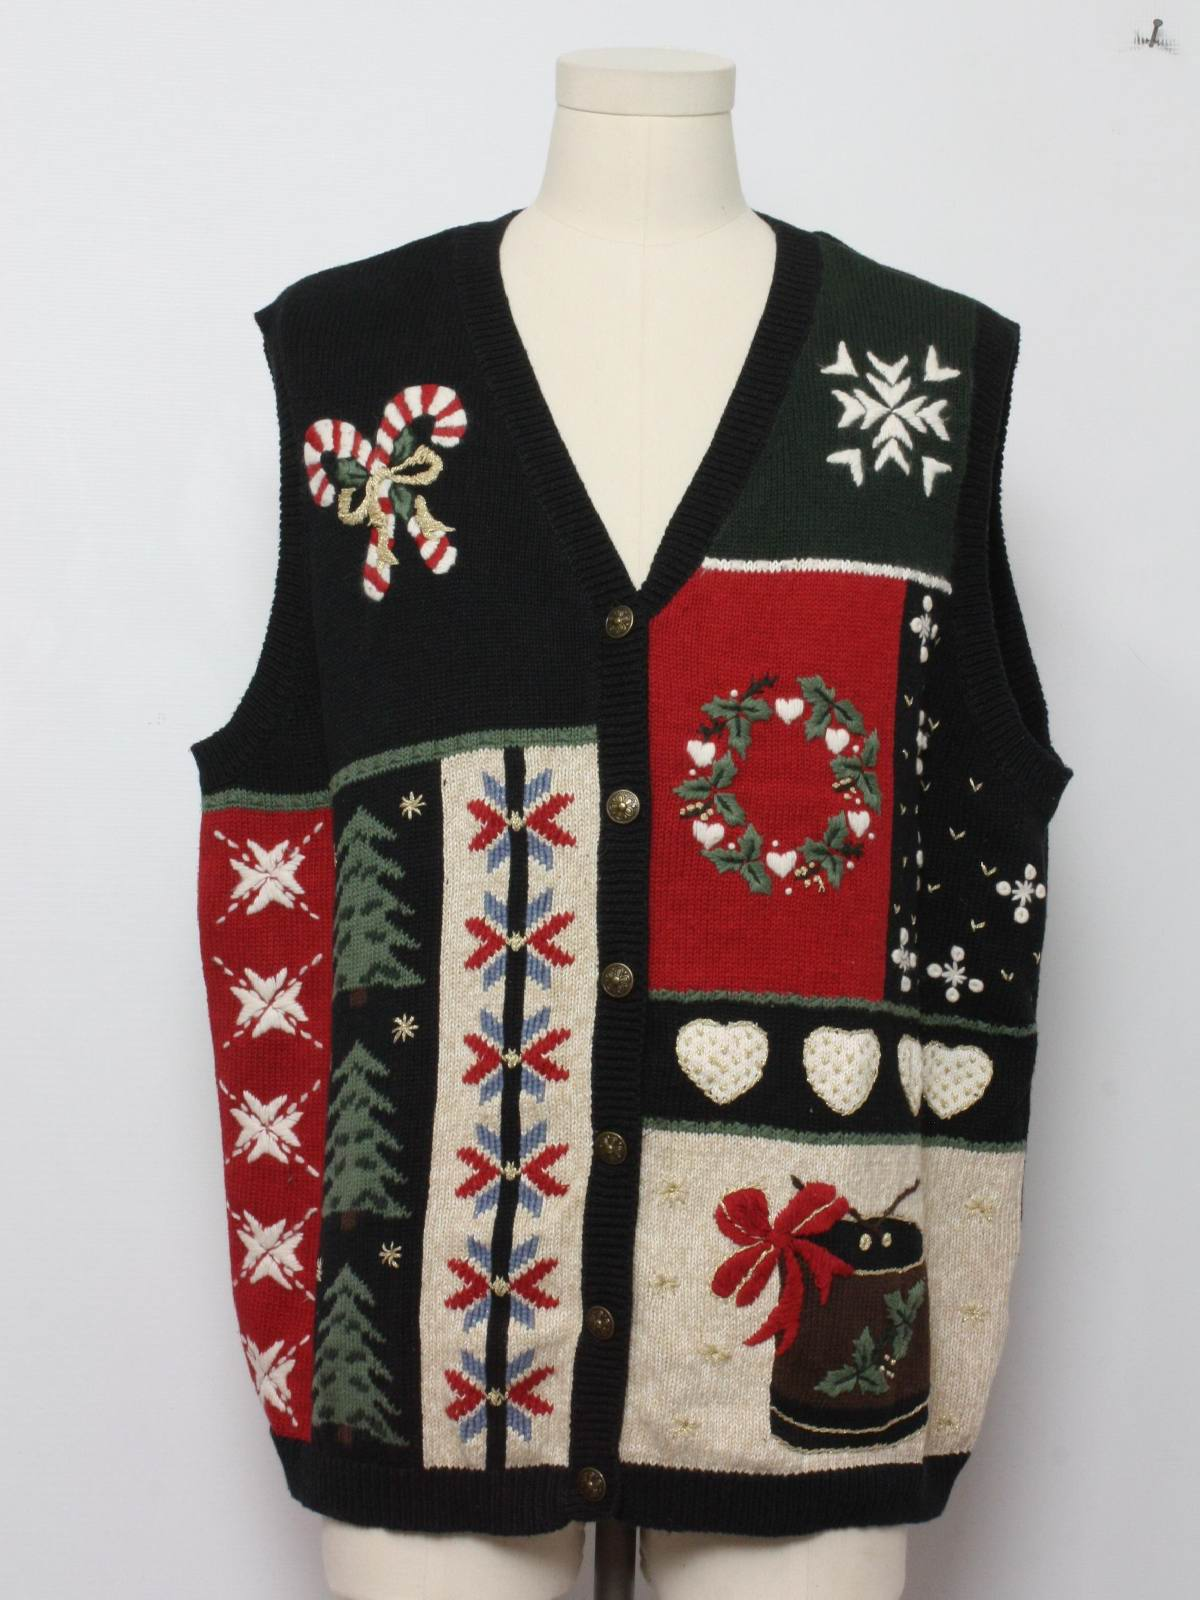 Sleeveless ugly christmas sweater vest veed neckline with candy canes